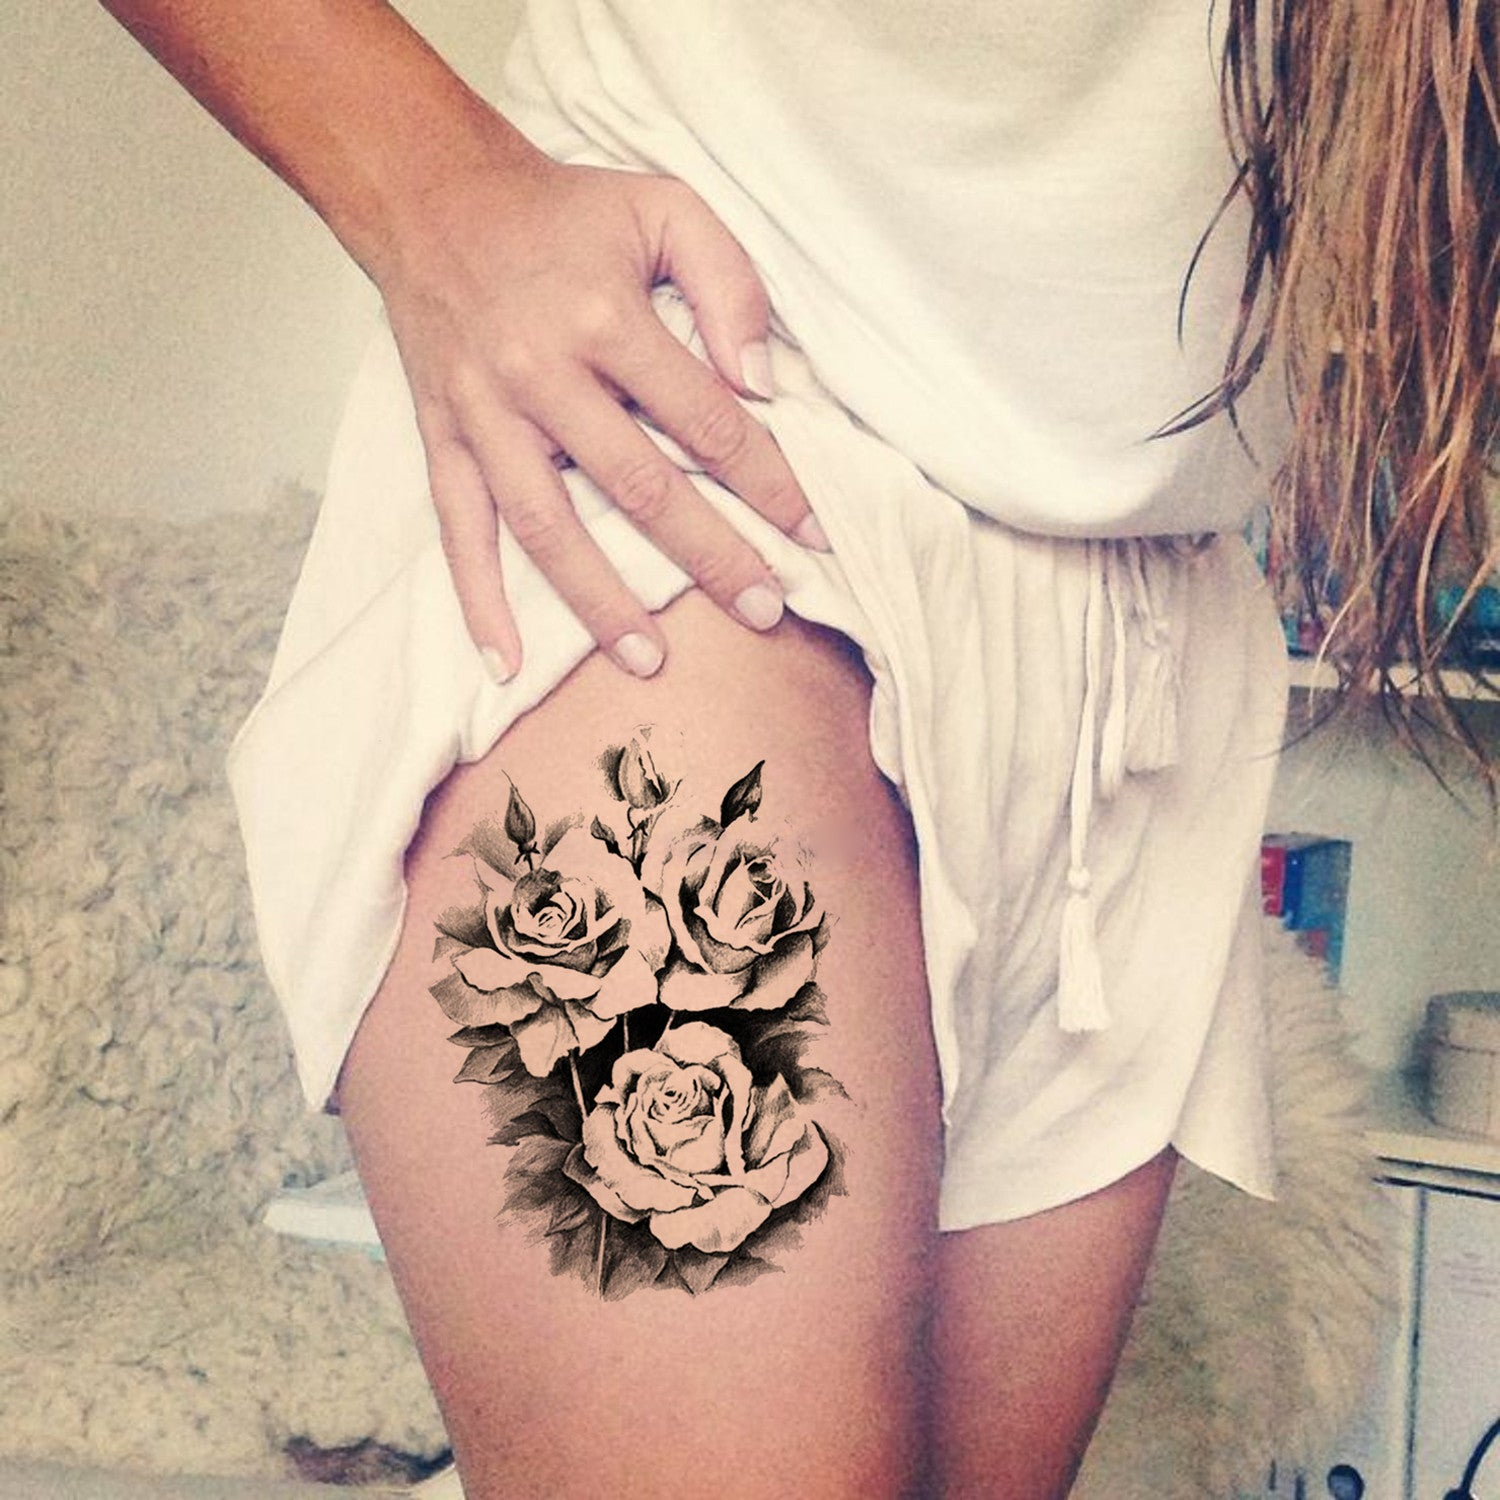 30 Trending Thigh Tattoo Ideas \u2013 MyBodiArt